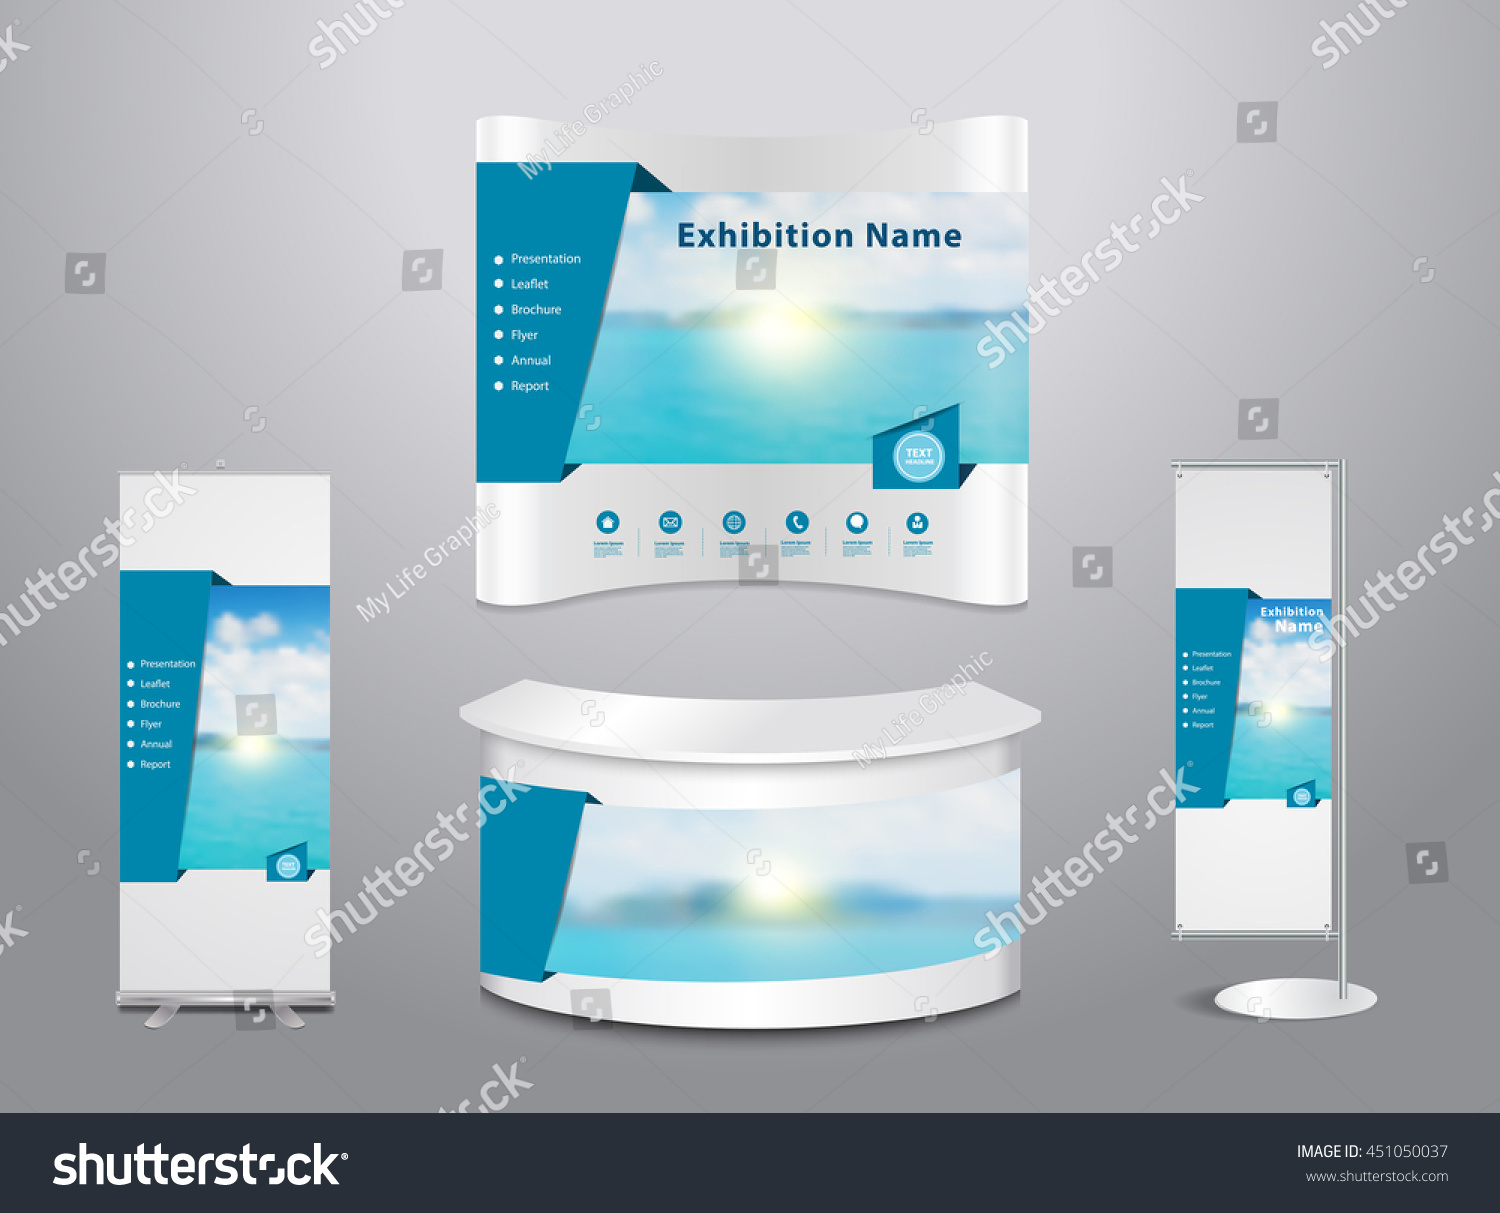 Exhibition Stand Layout Design : Set trade exhibition stand cover presentation stock vector